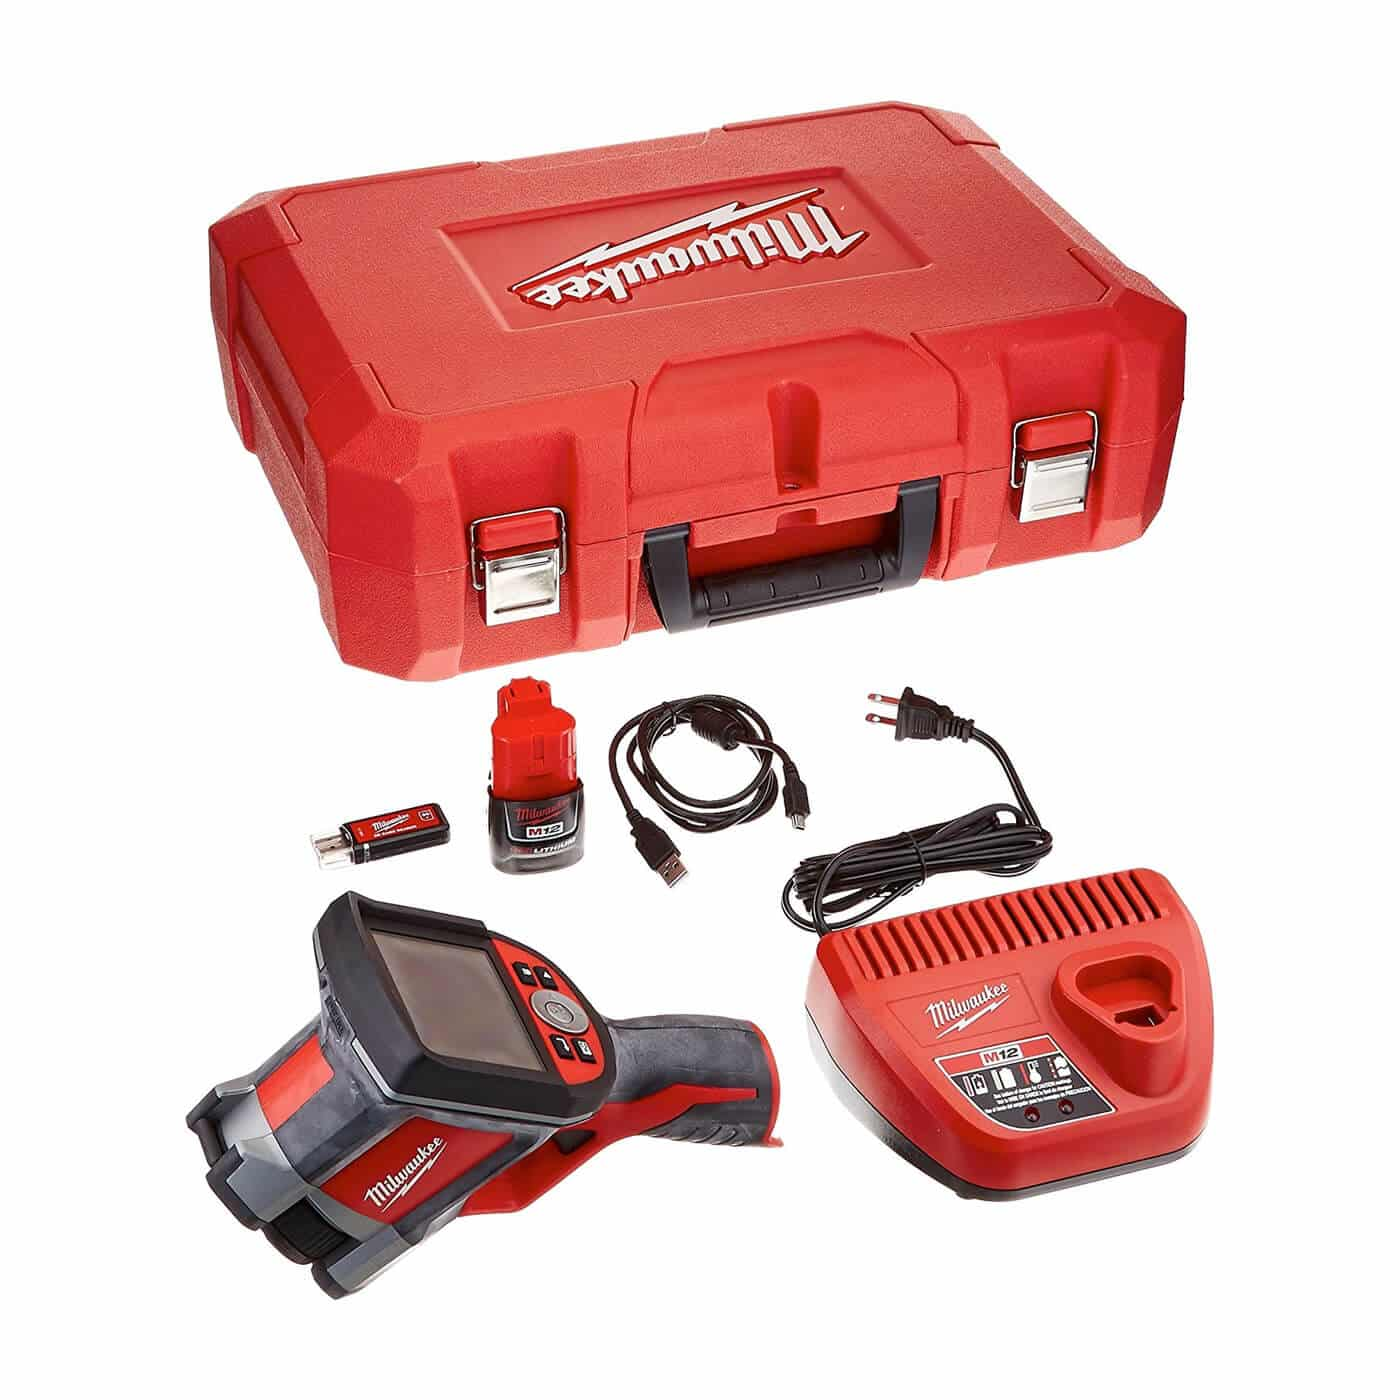 Milwaukee 2260-21 M12 Thermal Imager Kit